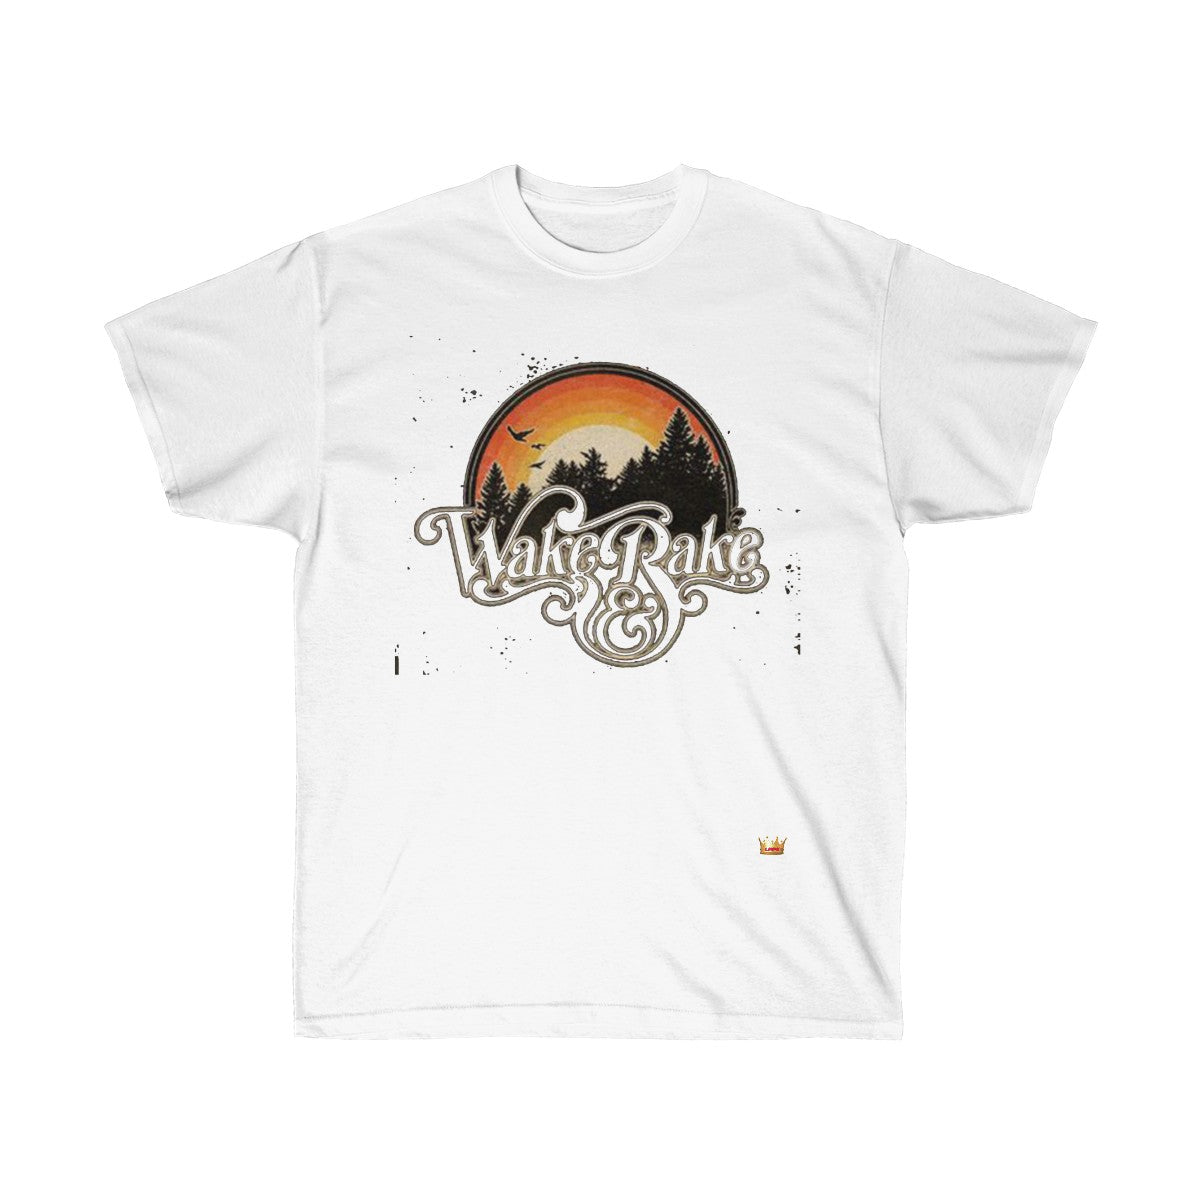 Wake and Bake Cotton Tee - LMPG Store